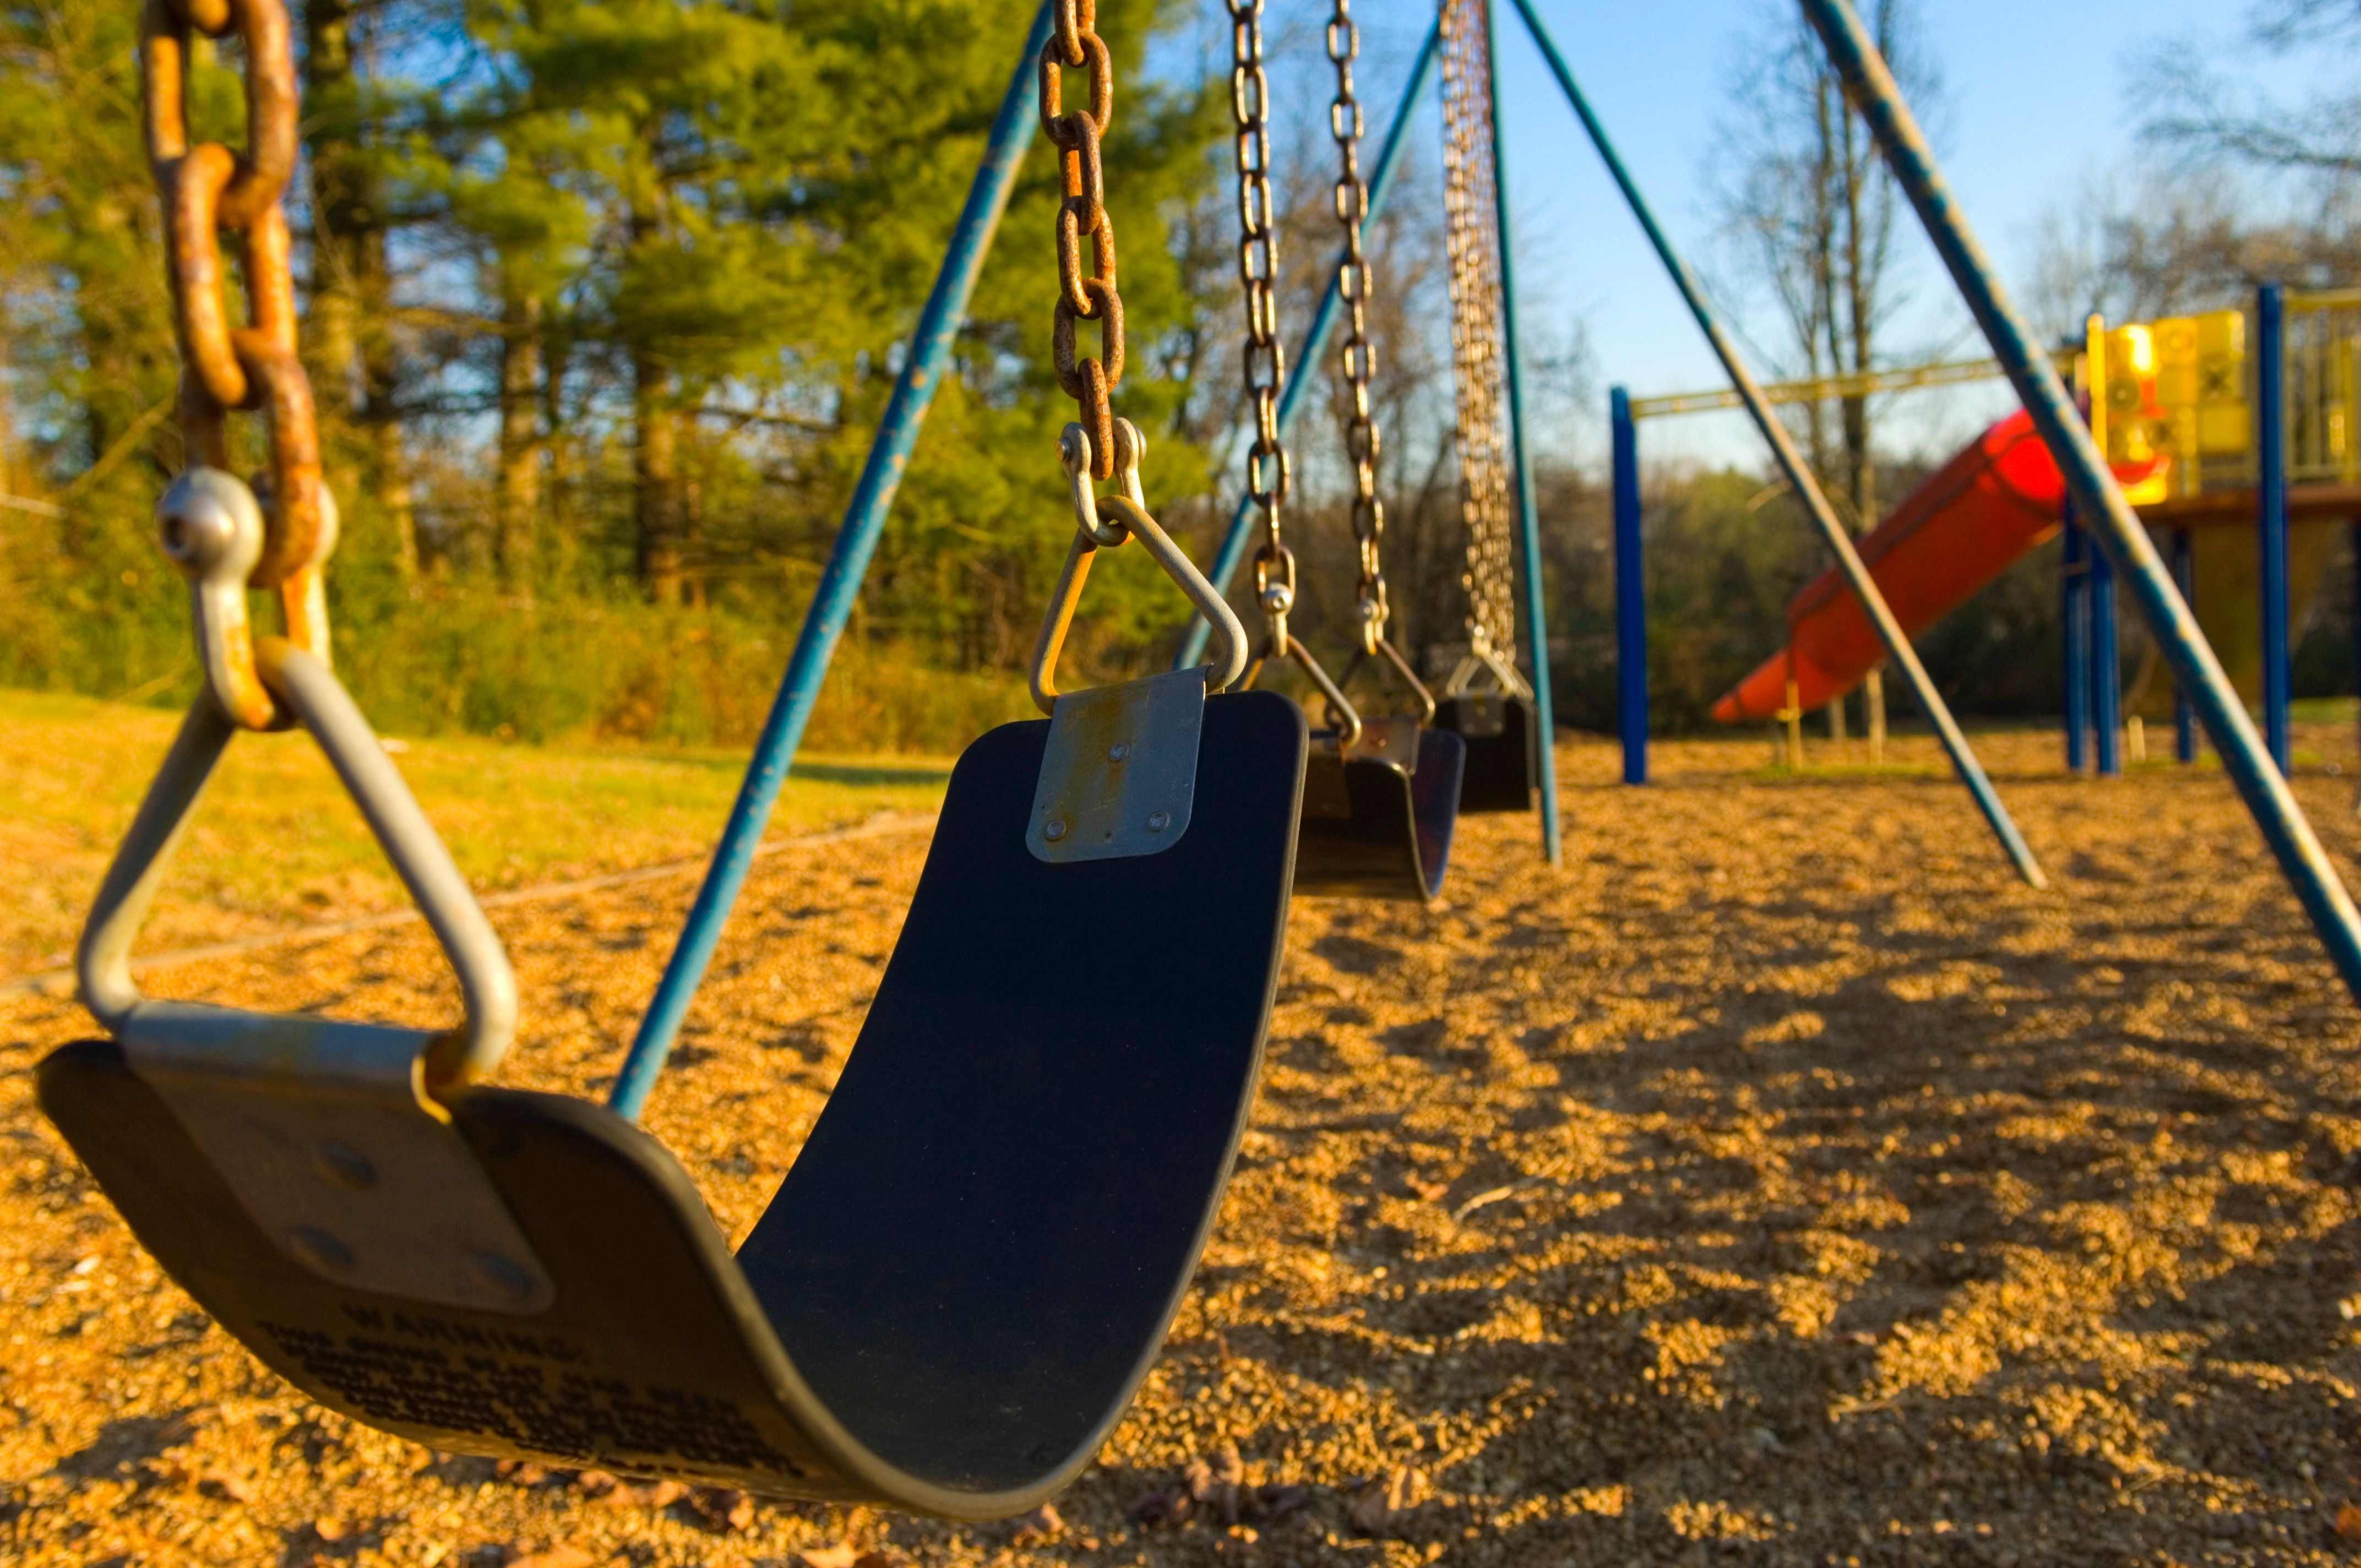 A color image of a child's swing-set at a playground at a local school or park. the photo is a close up of the seat for the swings with a child's slide, monkey bars and playground in the background at a local school or park. there are also trees with green leaves and blue sky in the background. the swings are connected to metal chains that the children swing on during playtime while at school. and the lighting is sunlight during the day.    more playground pictures: click here [url=http://www.istockphoto.com/file_search.php?action=file&lightboxID=4651500][img]http://www.istockphoto.com/file_thumbview_approve.php?size=1&id=5073108[/img][/url]